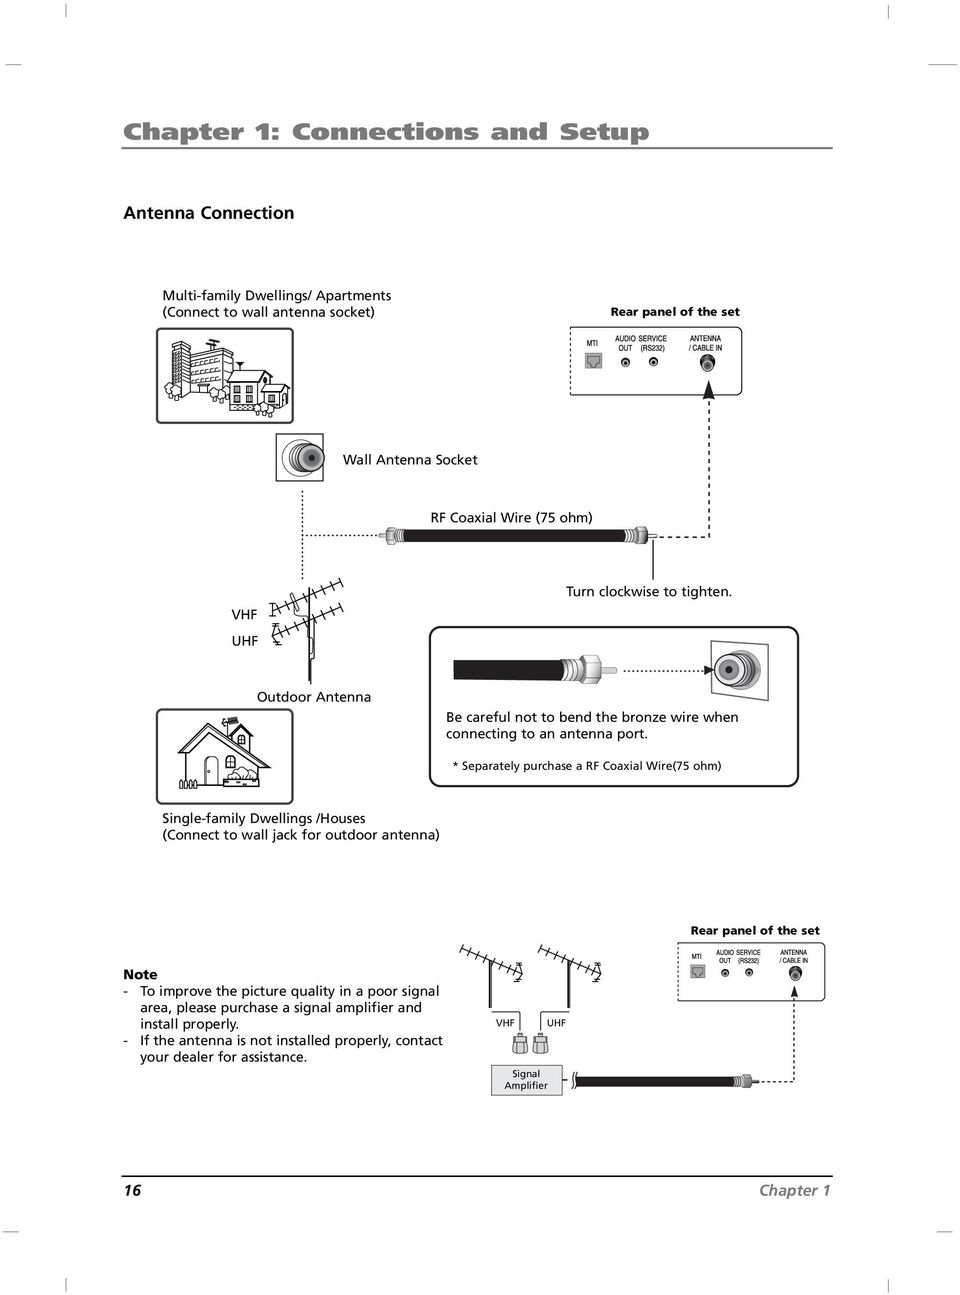 * Separately purchase a RF Coaxial Wire(75 ohm) Single-family Dwellings /Houses (Connect to wall jack for outdoor antenna) Rear panel of the set Note - To improve the